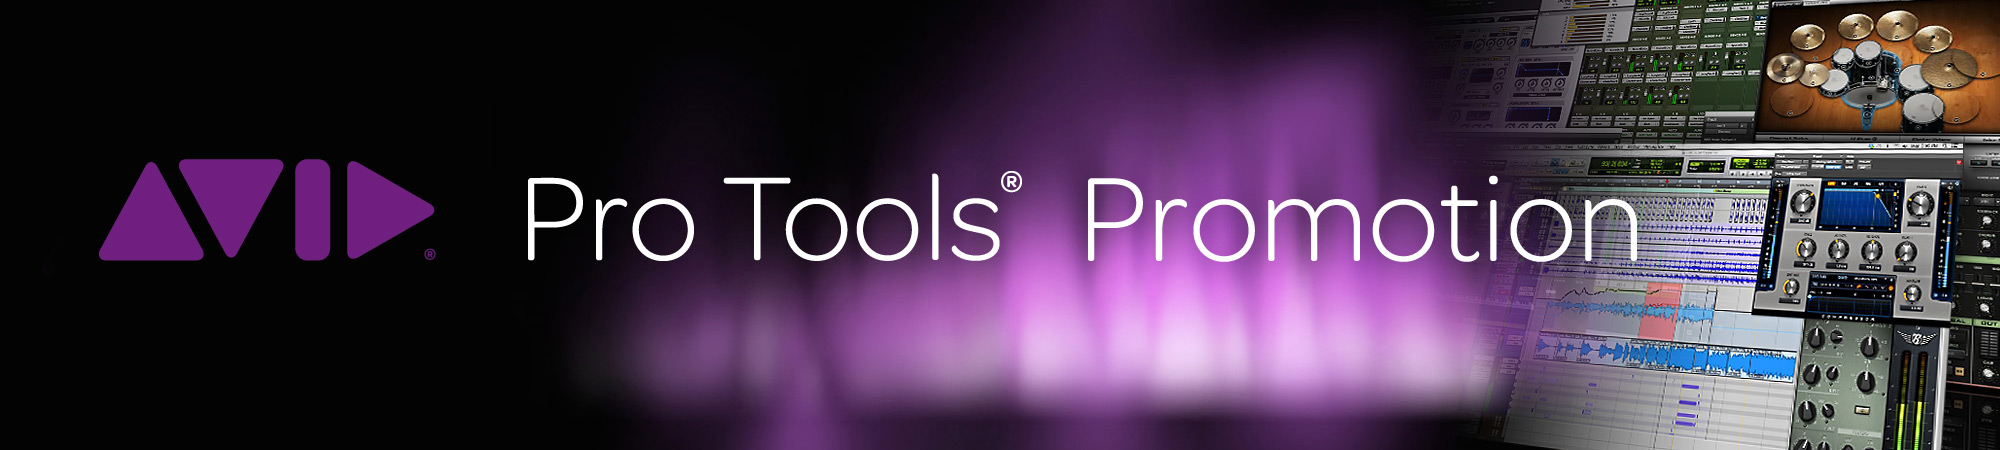 Pro Tools Promotion